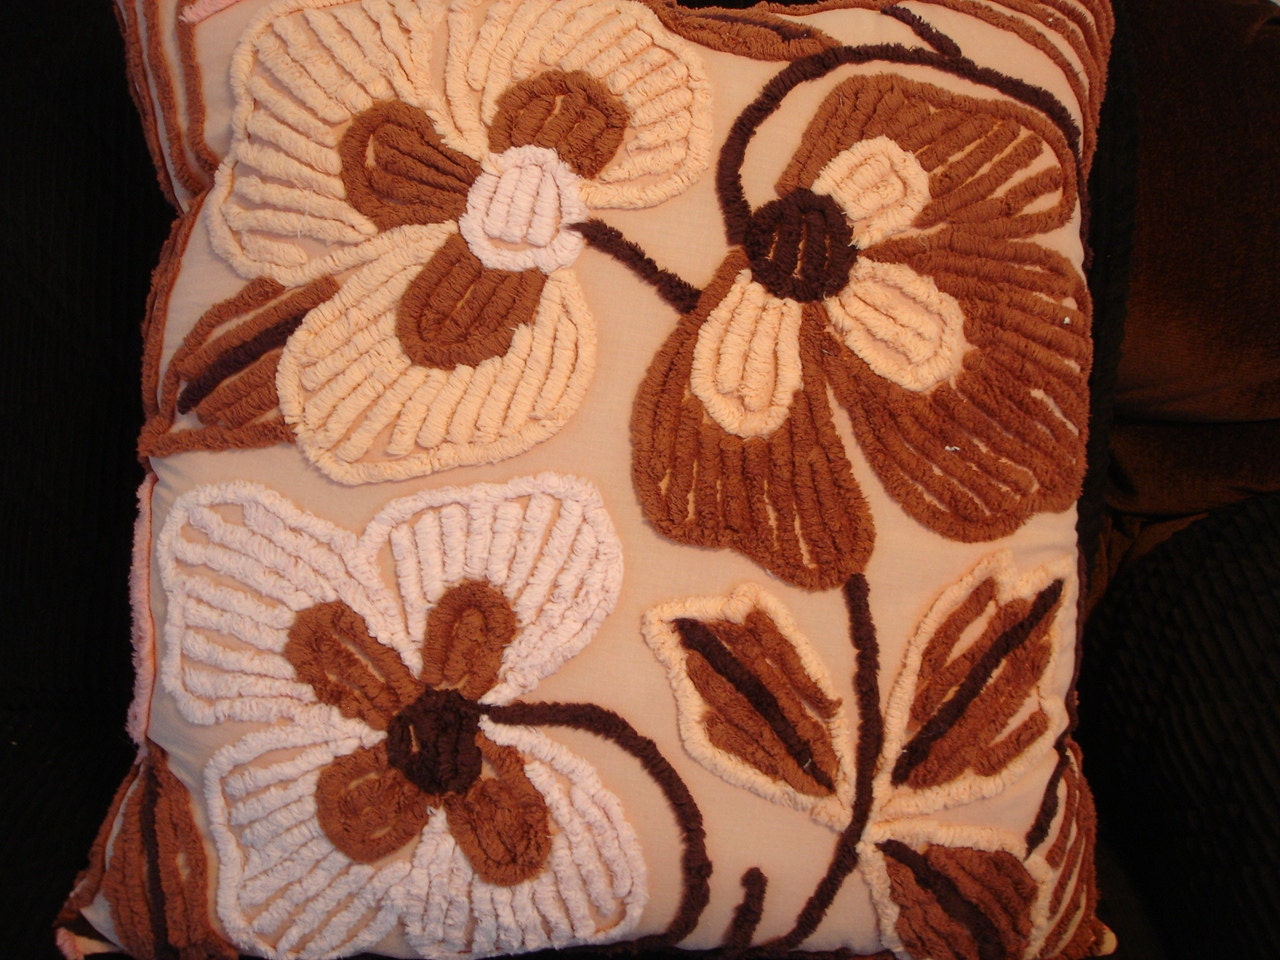 Chenille,Pillow,with,Brown,Flowers,Vintage,Upcycled,Quilt,Housewares,upcycled,vintage,pillow,pillow_pocket,pillow_shell,pink_chenille,for_your_home_shop,pillow_form,home_decor,bedroom_decor,living_room_decor,throw_pillow,rectangle_pillow,fabric,fiberfill